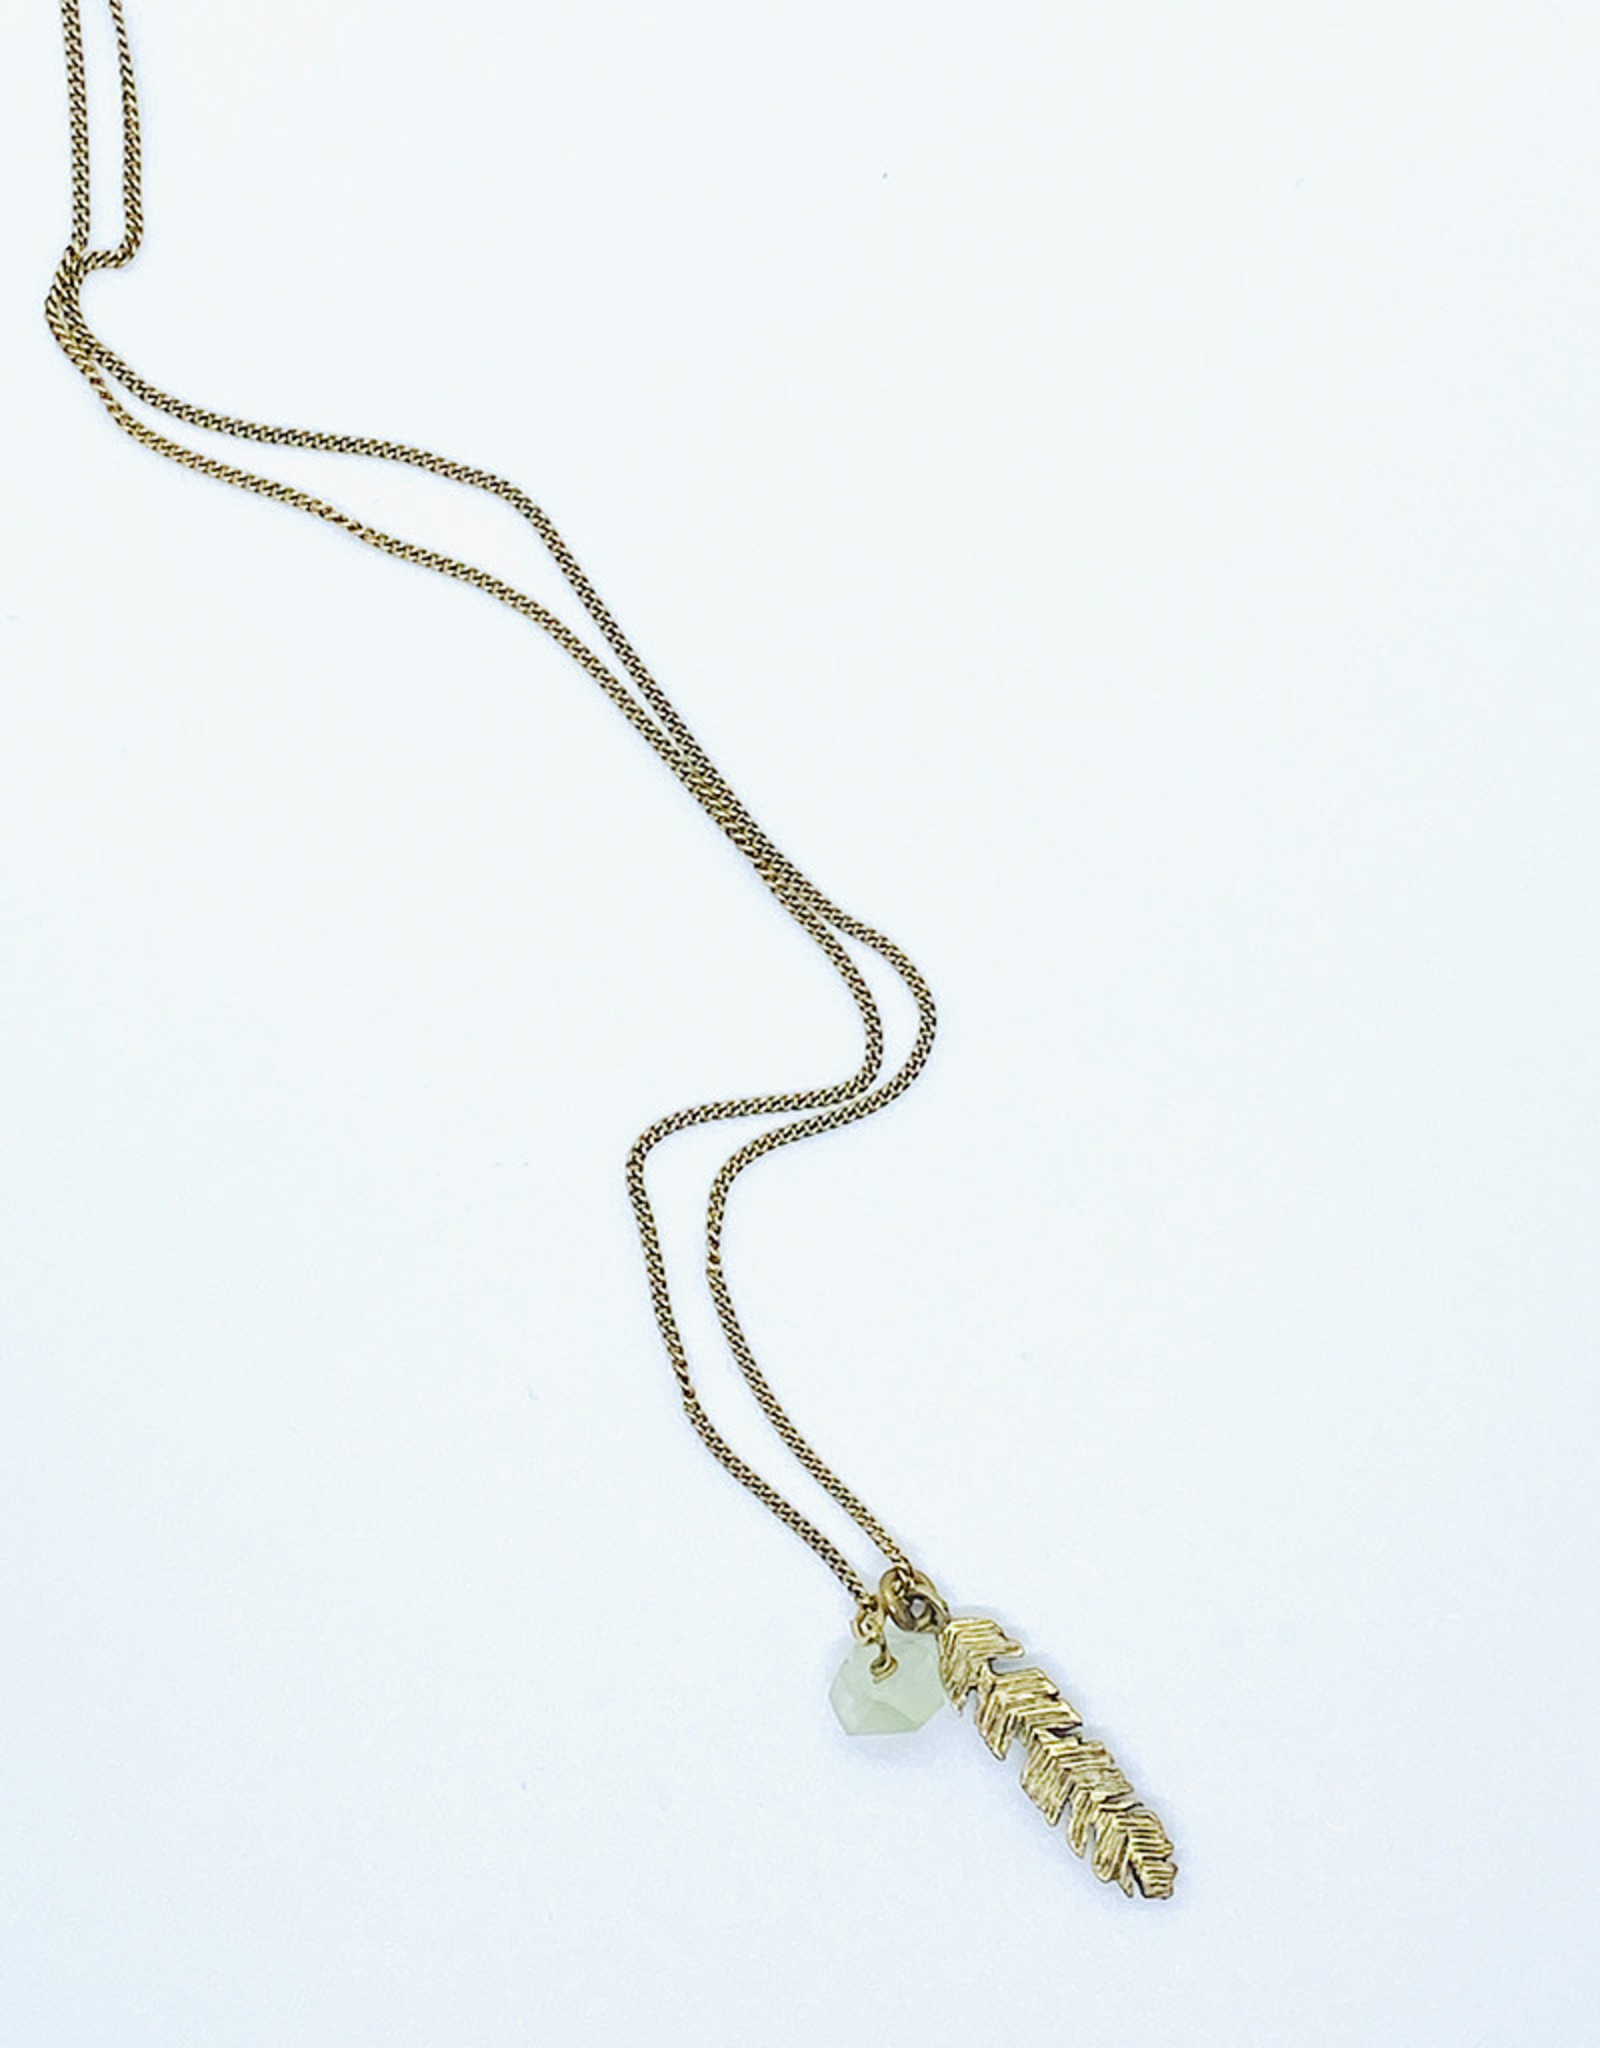 Tillydoro Feather + Green Amethyst Necklace // Tillydoro